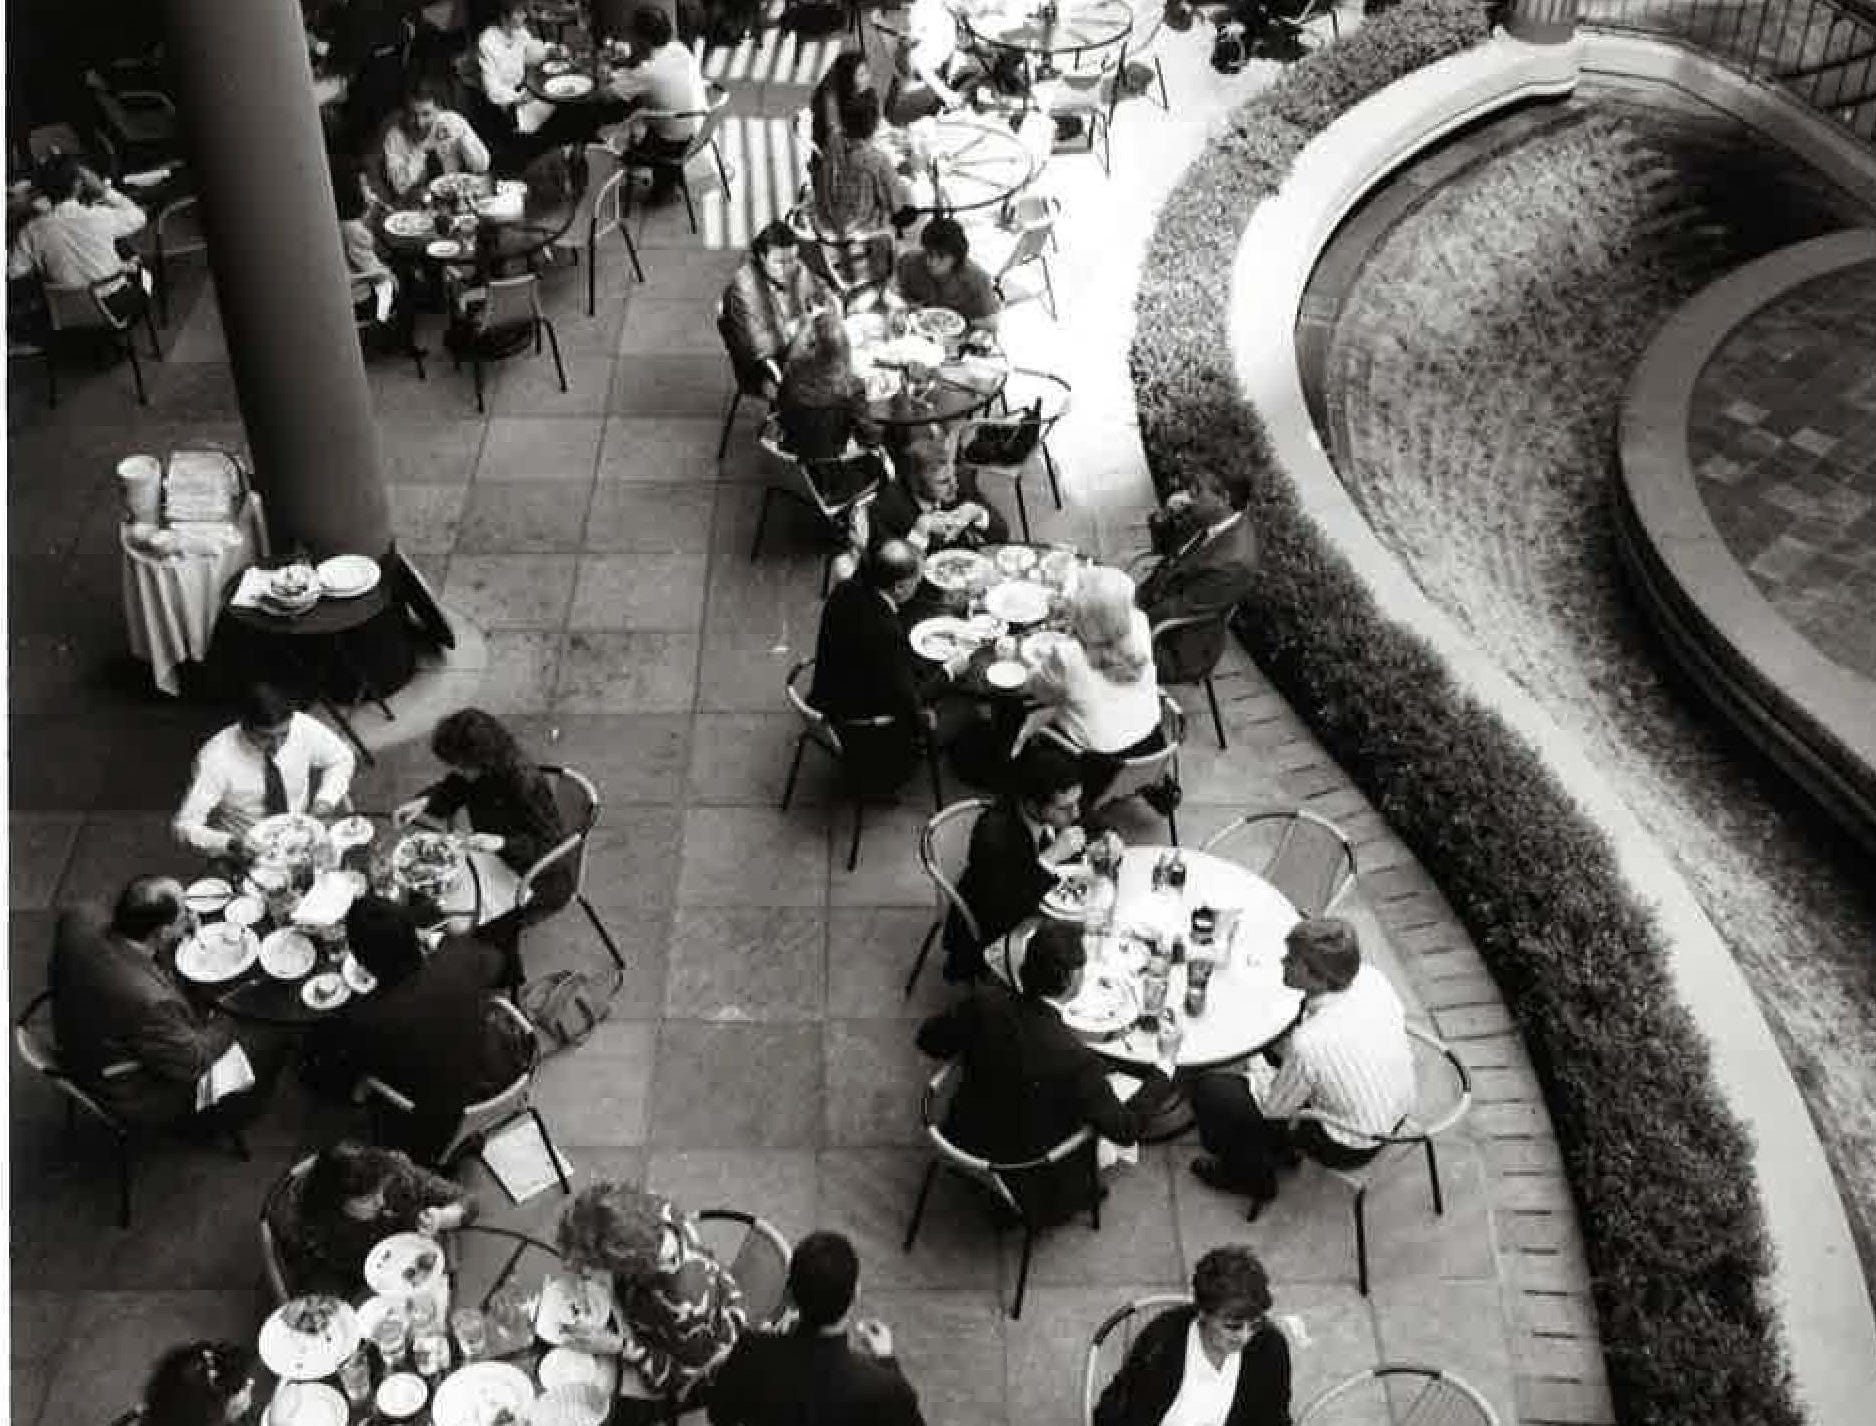 Visitors dining on the Arizona Center patio on March 20, 1992.